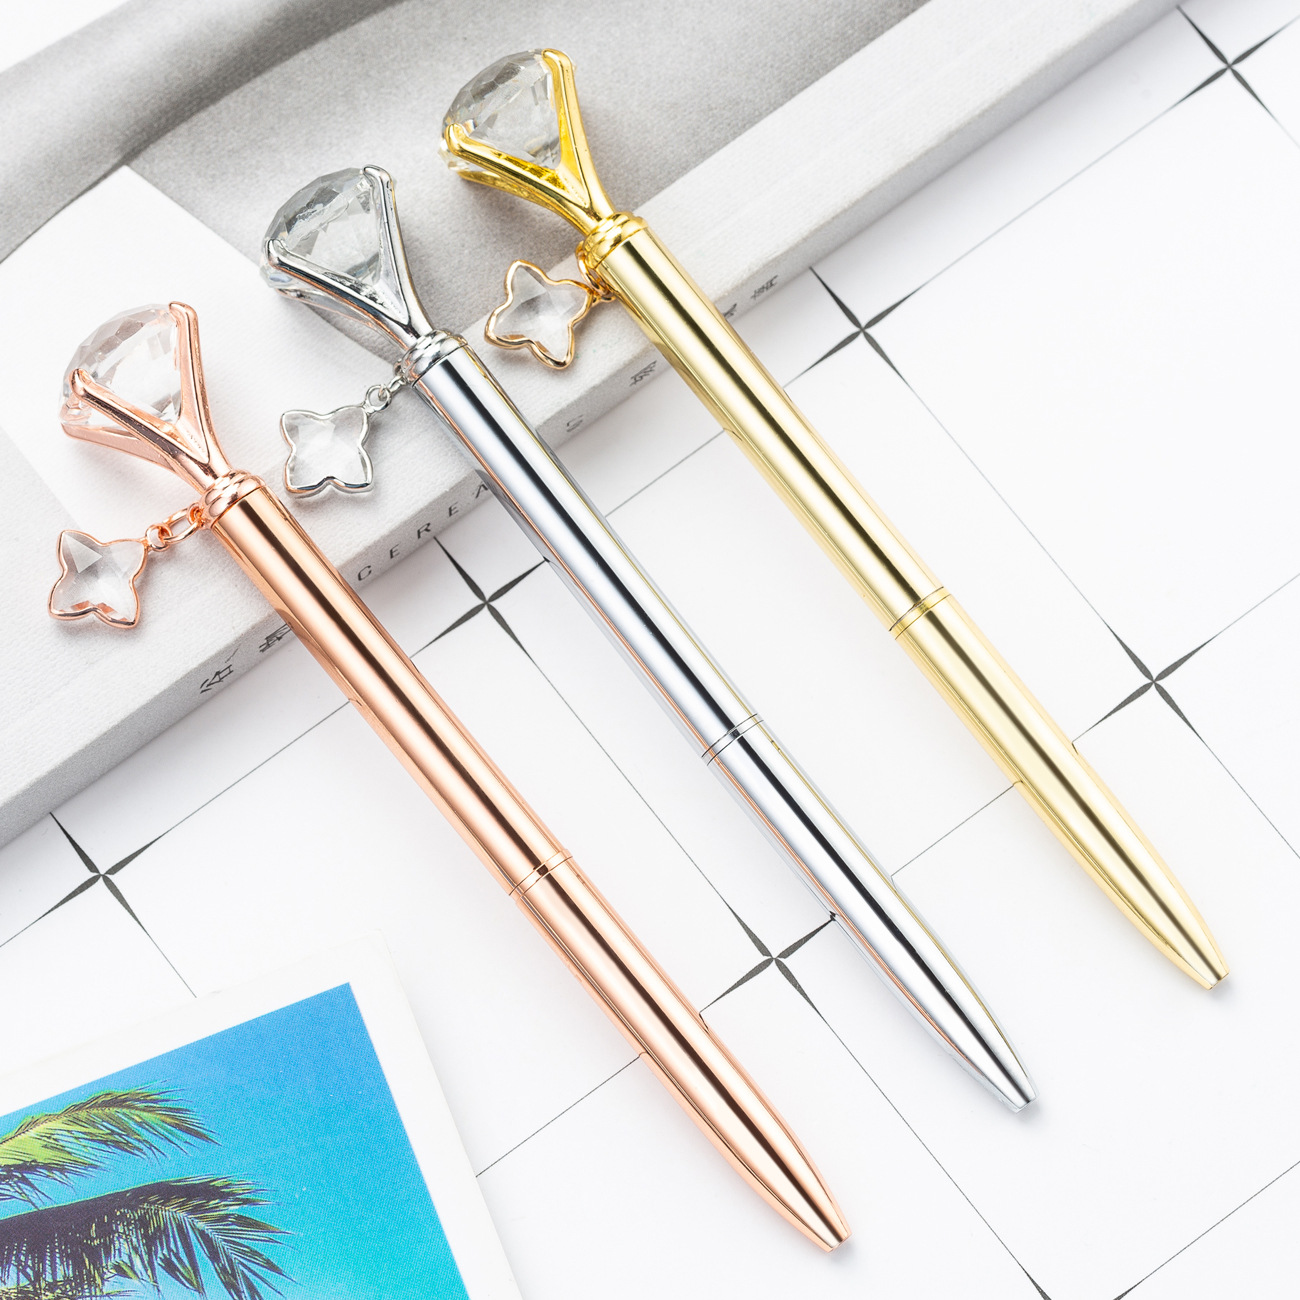 New Styles Fashion Writing Gift With Four-leaf Clover Pendant Promotion Elegant Crystal Metal Ballpoint Pen